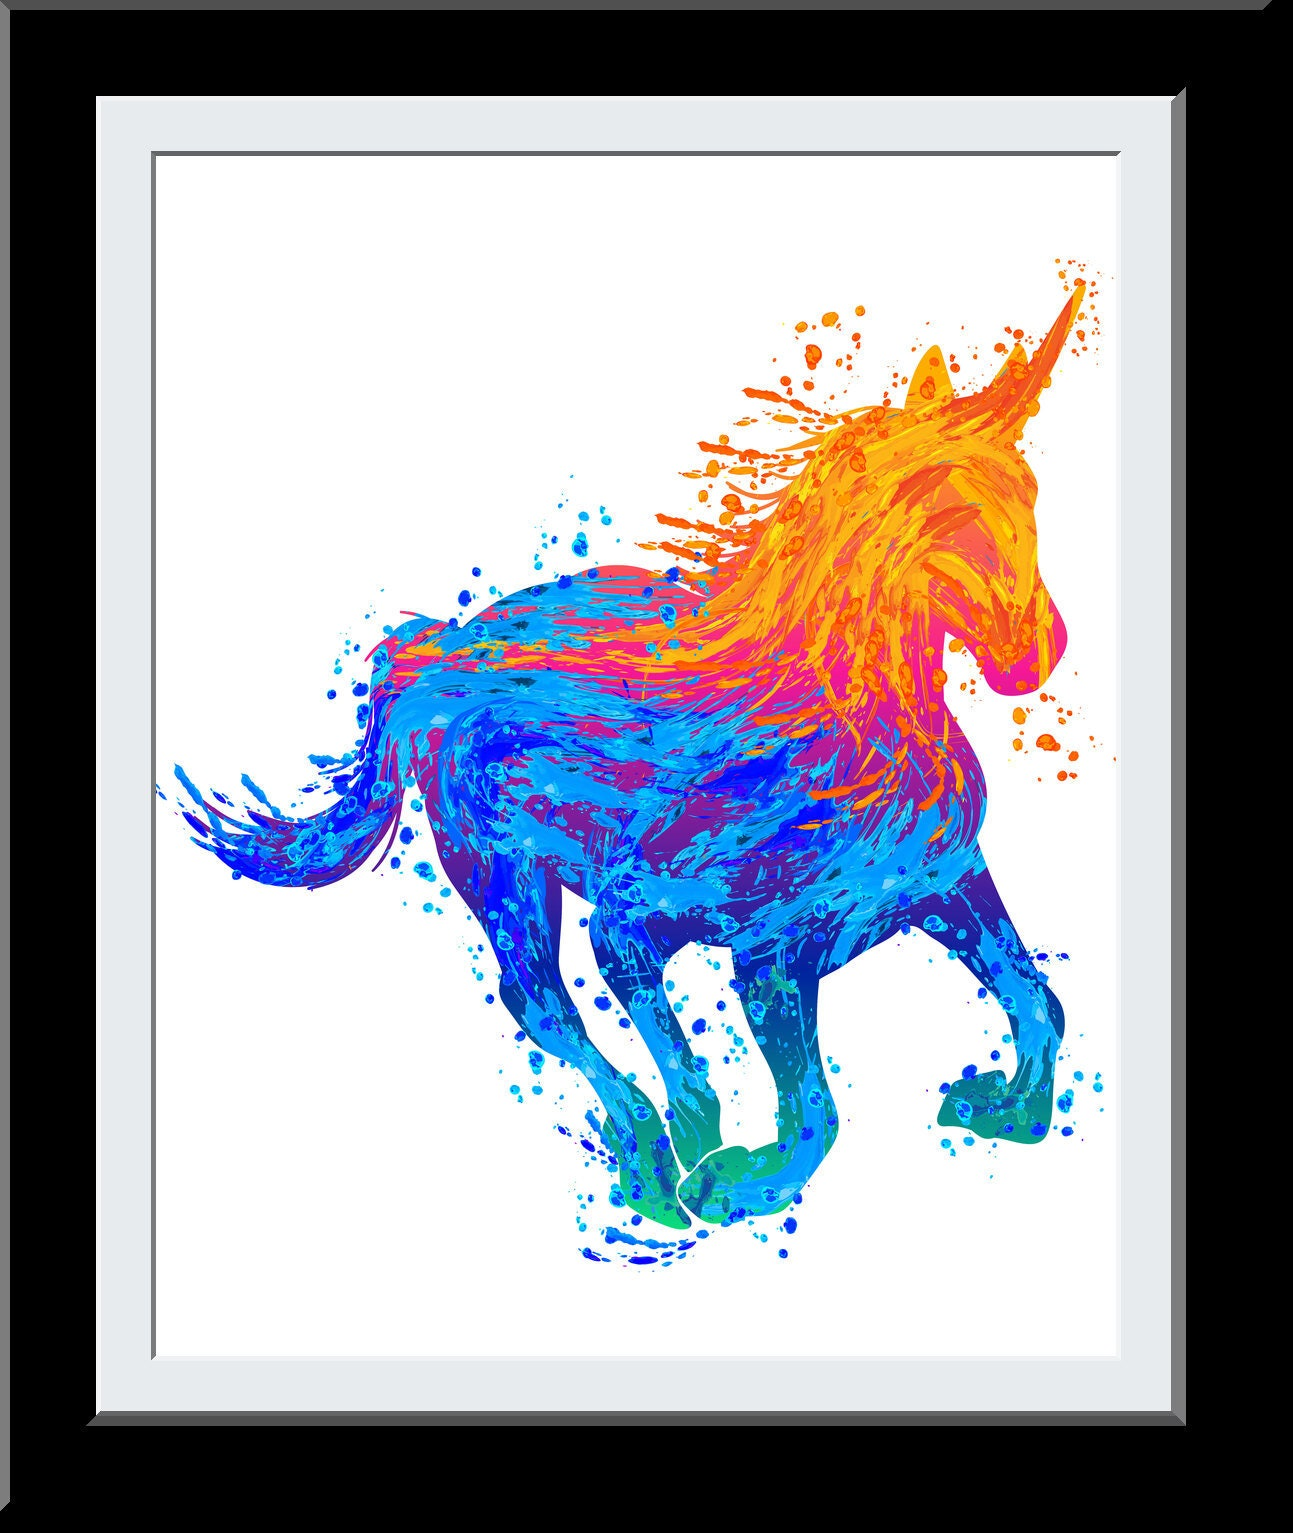 Water Color Unicorn Gift - Unicorn WaterColor Print - Fire+Water Elemental Digital Painting - Gift for Girls - Nursery Deor Wall Art